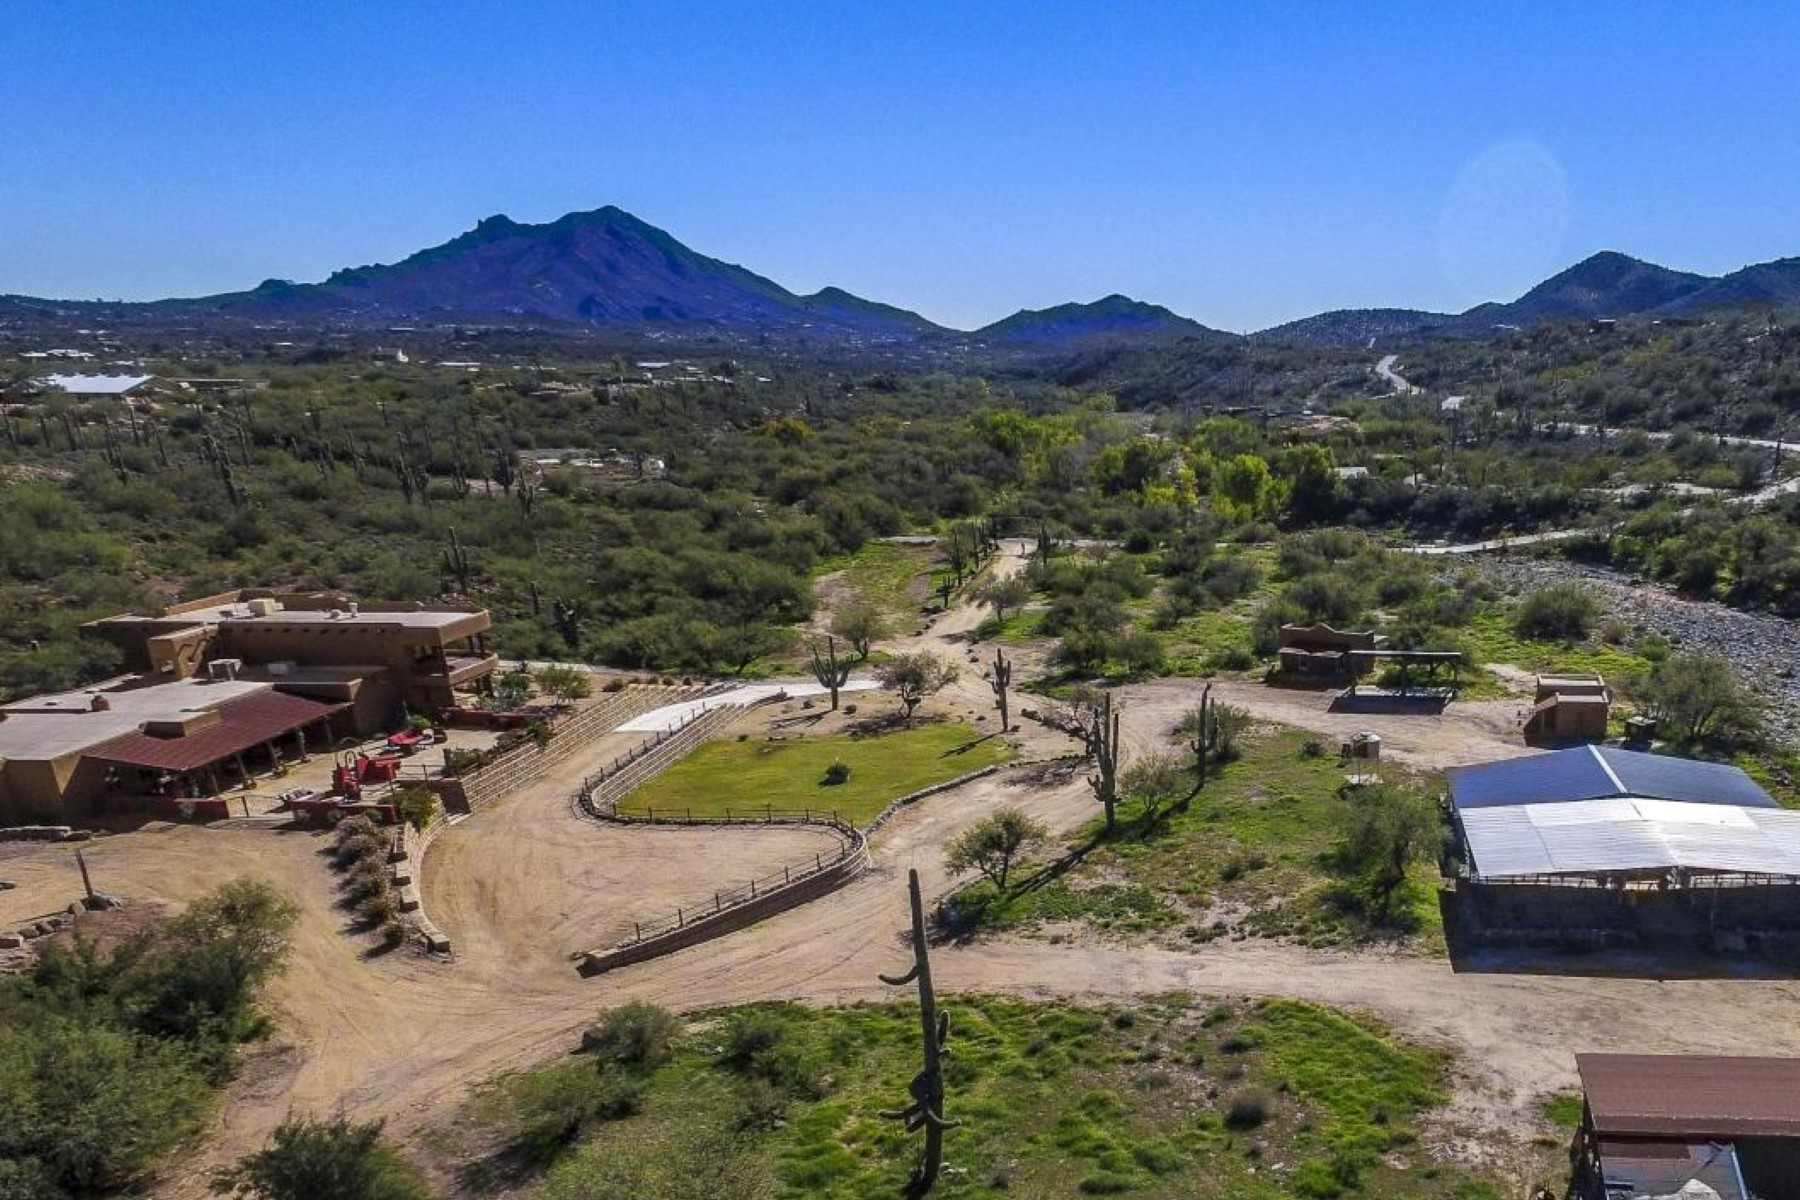 단독 가정 주택 용 매매 에 Exquisite Ranch Estate in Cave Creek 5180 E Rockaway Hills Dr Cave Creek, 아리조나, 85331 미국